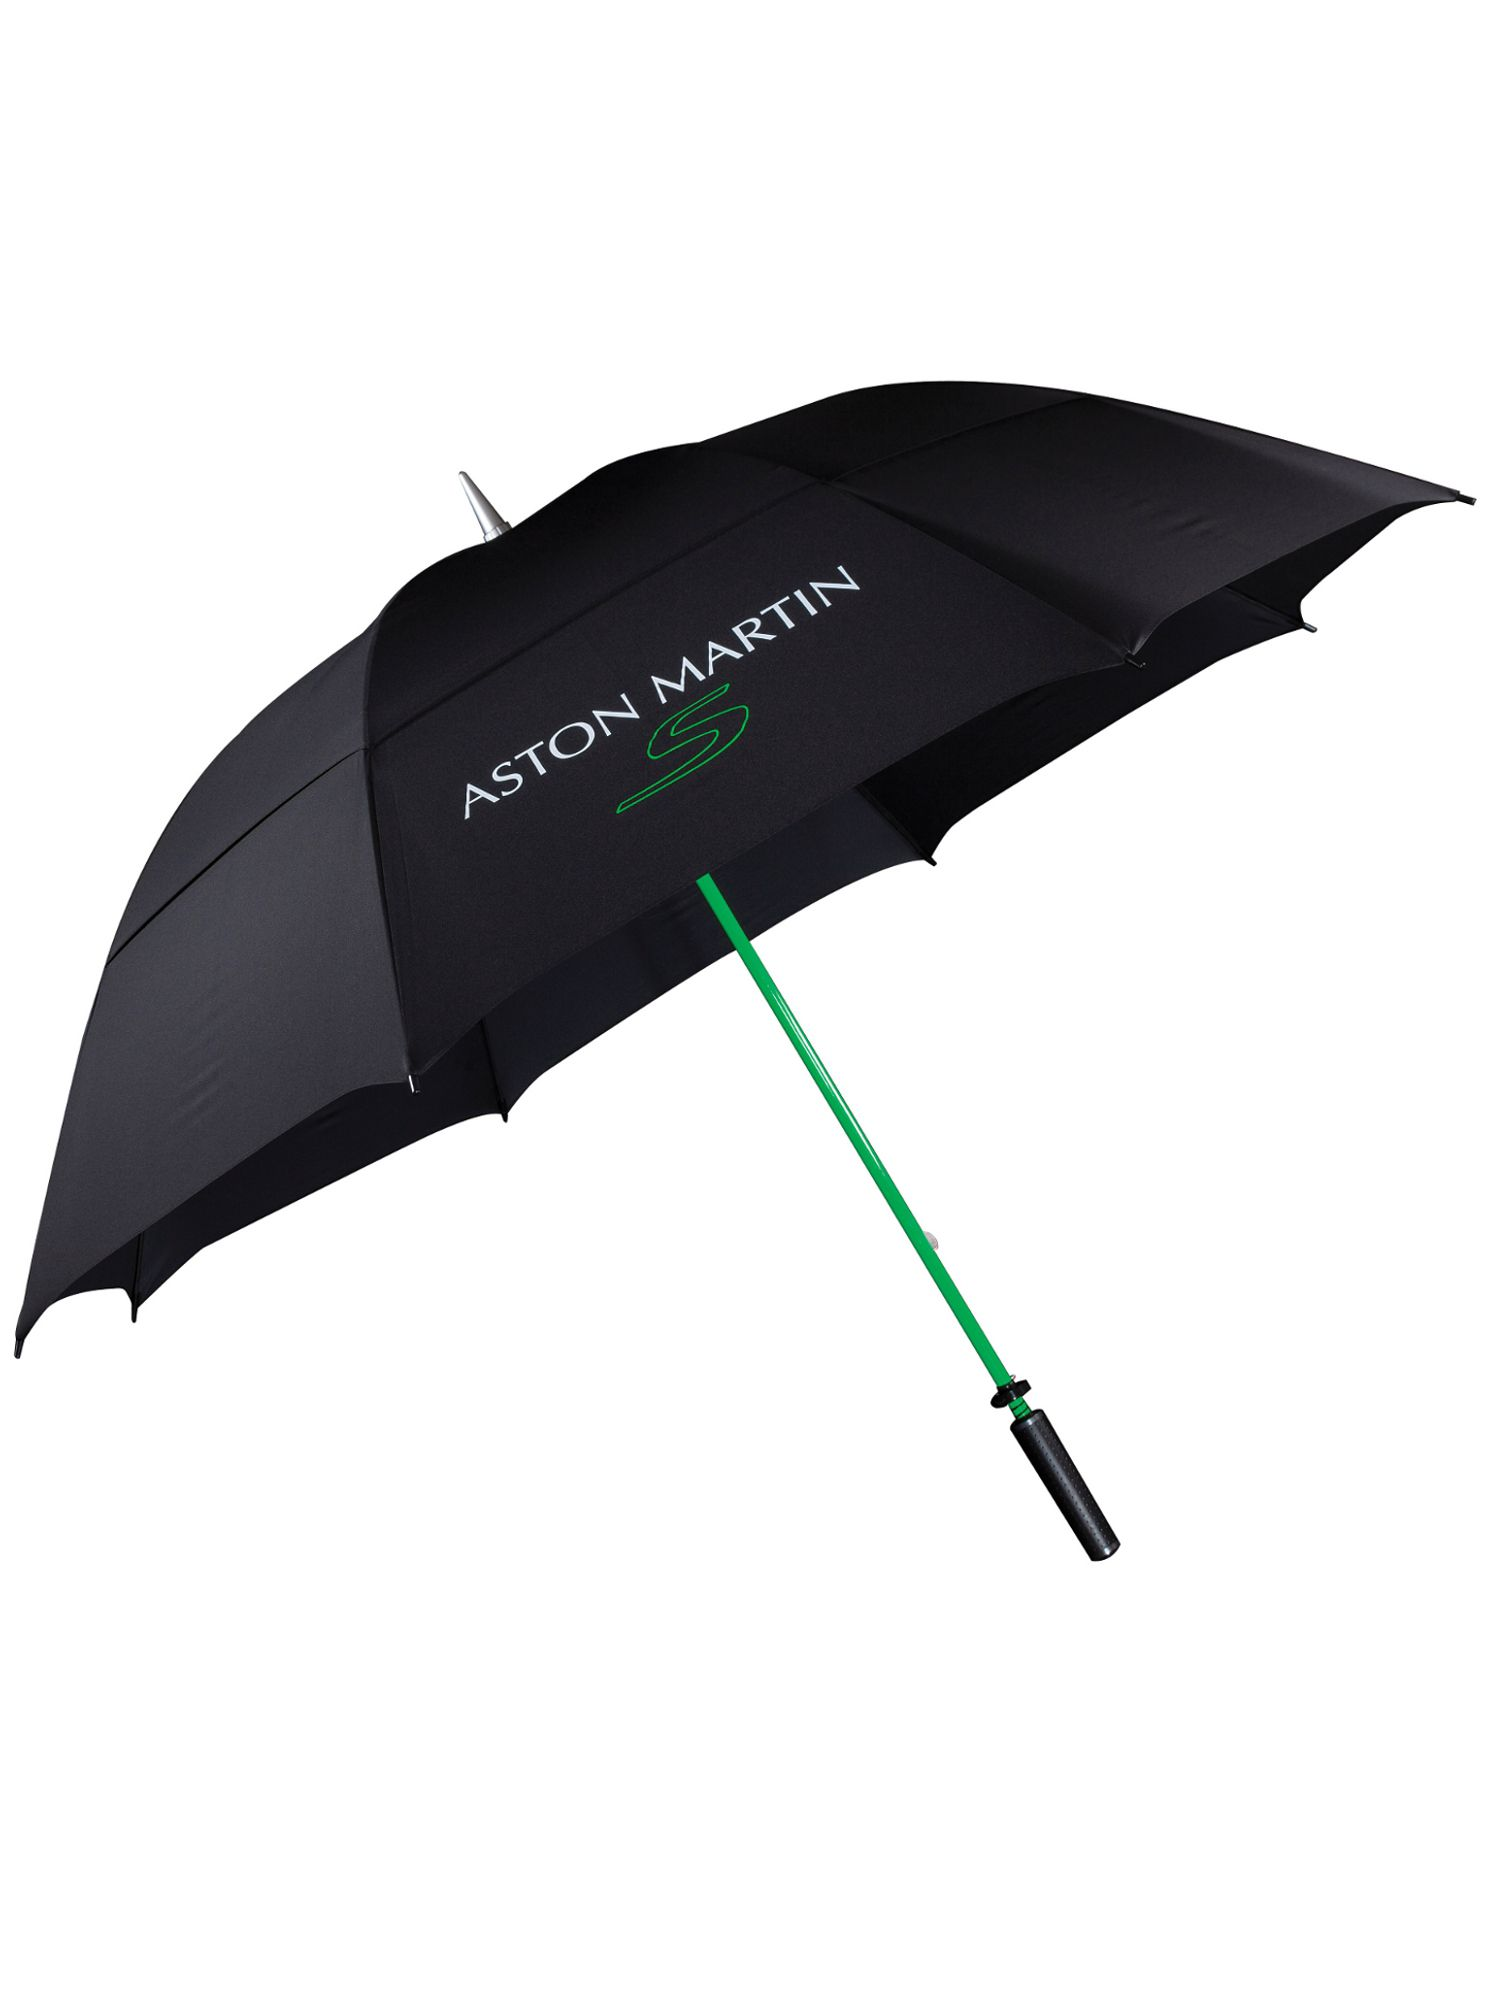 Aston Martin Umbrella